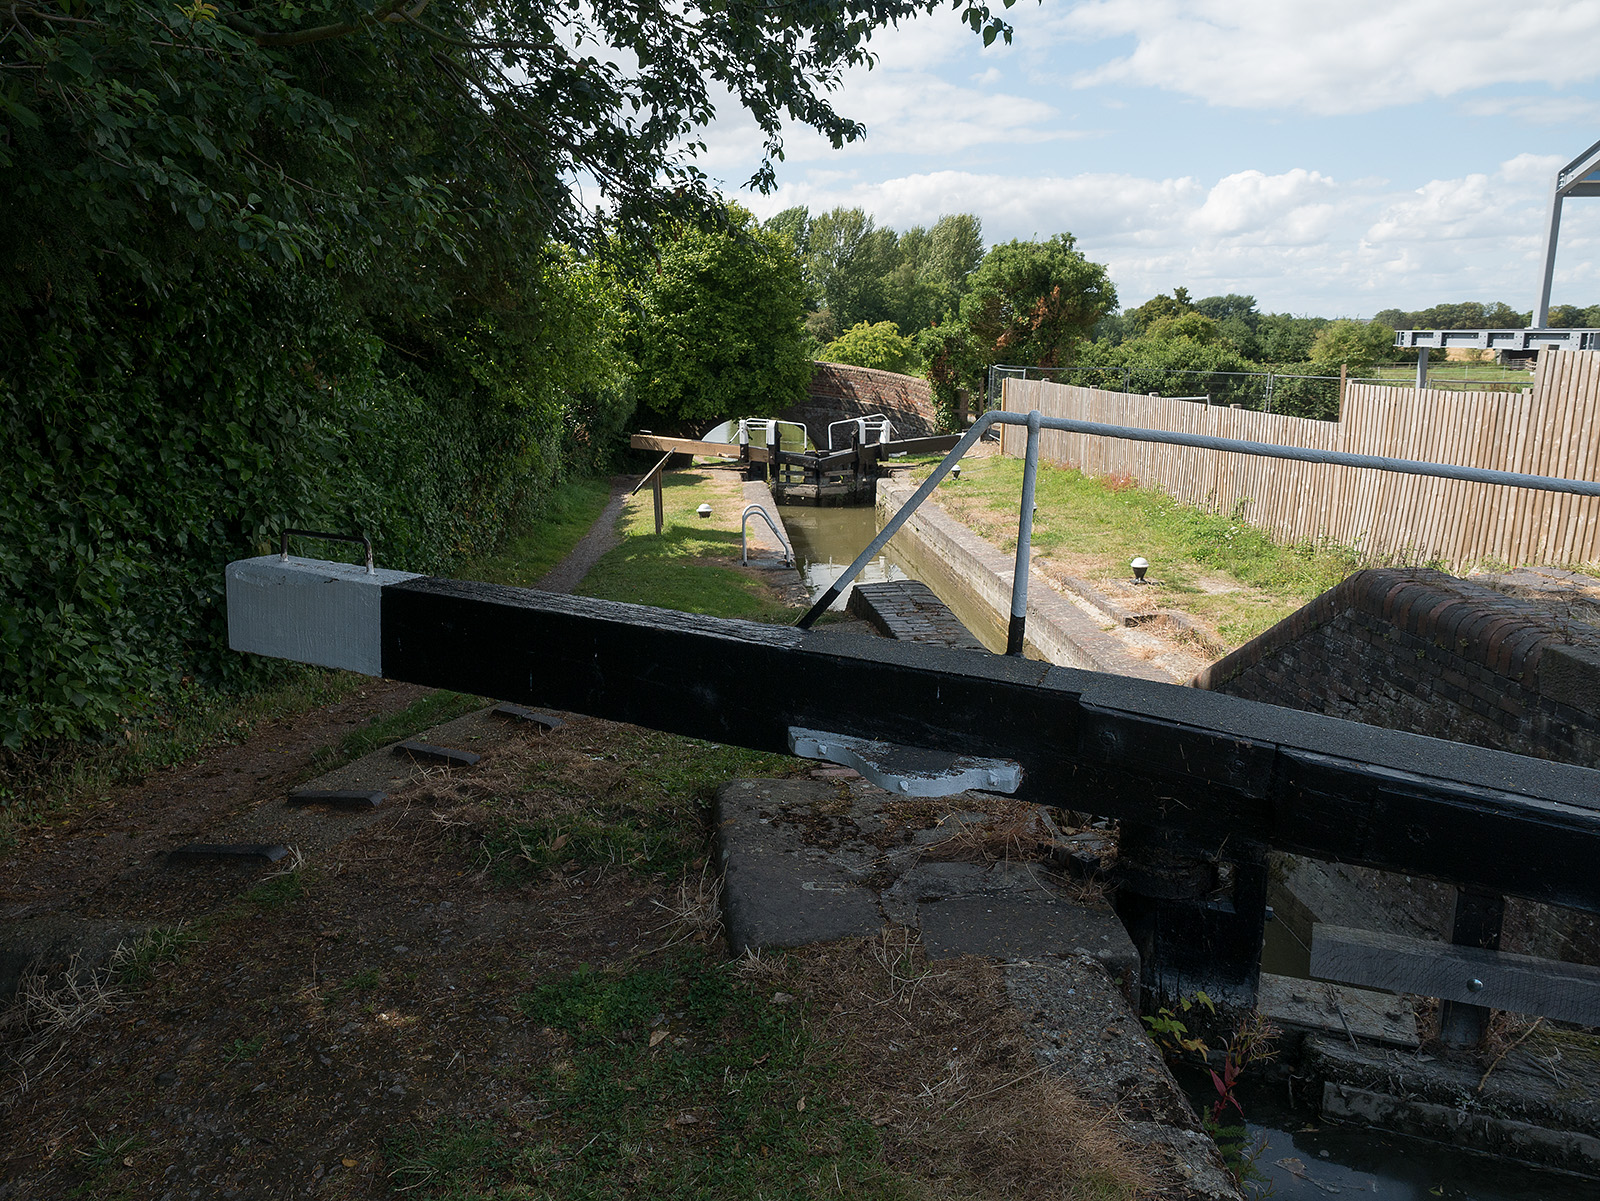 Marsworth no 1 and 2 locks on the initial entry to the Aylesbury branch - note the narrowness of the lock and the gates